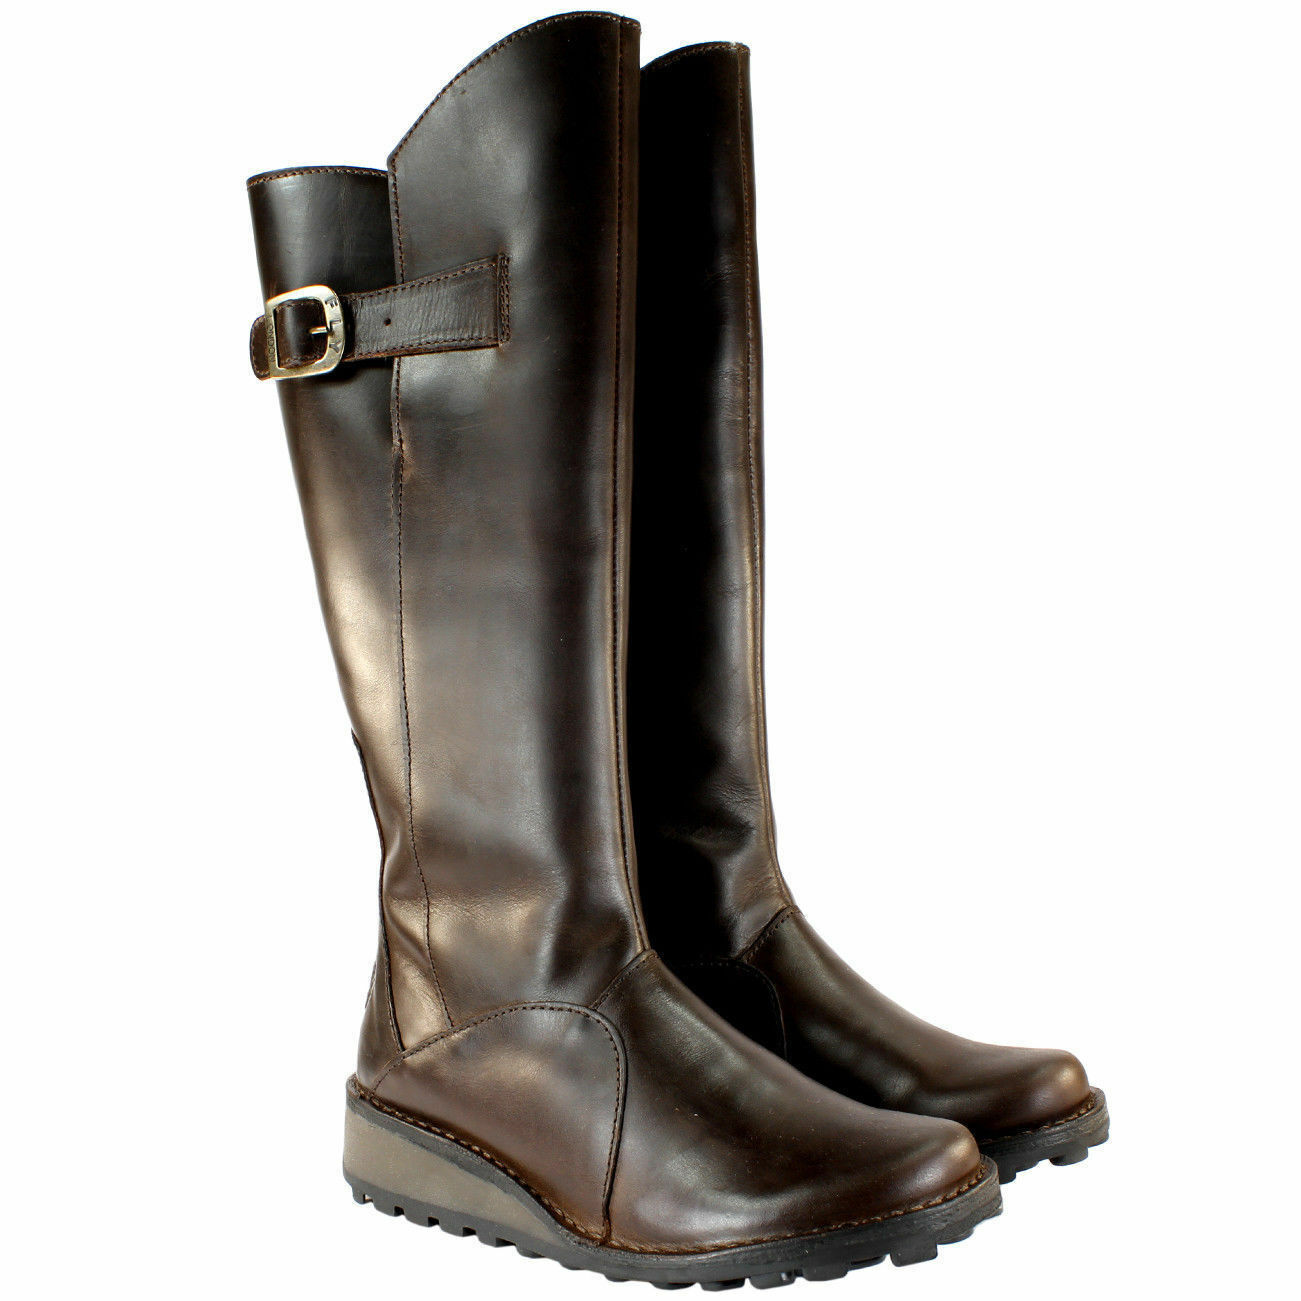 FLY LONDON MOL WARM BROWN LEATHER FLEECE LINED KNEE HIGH BOOTS UK 4  37